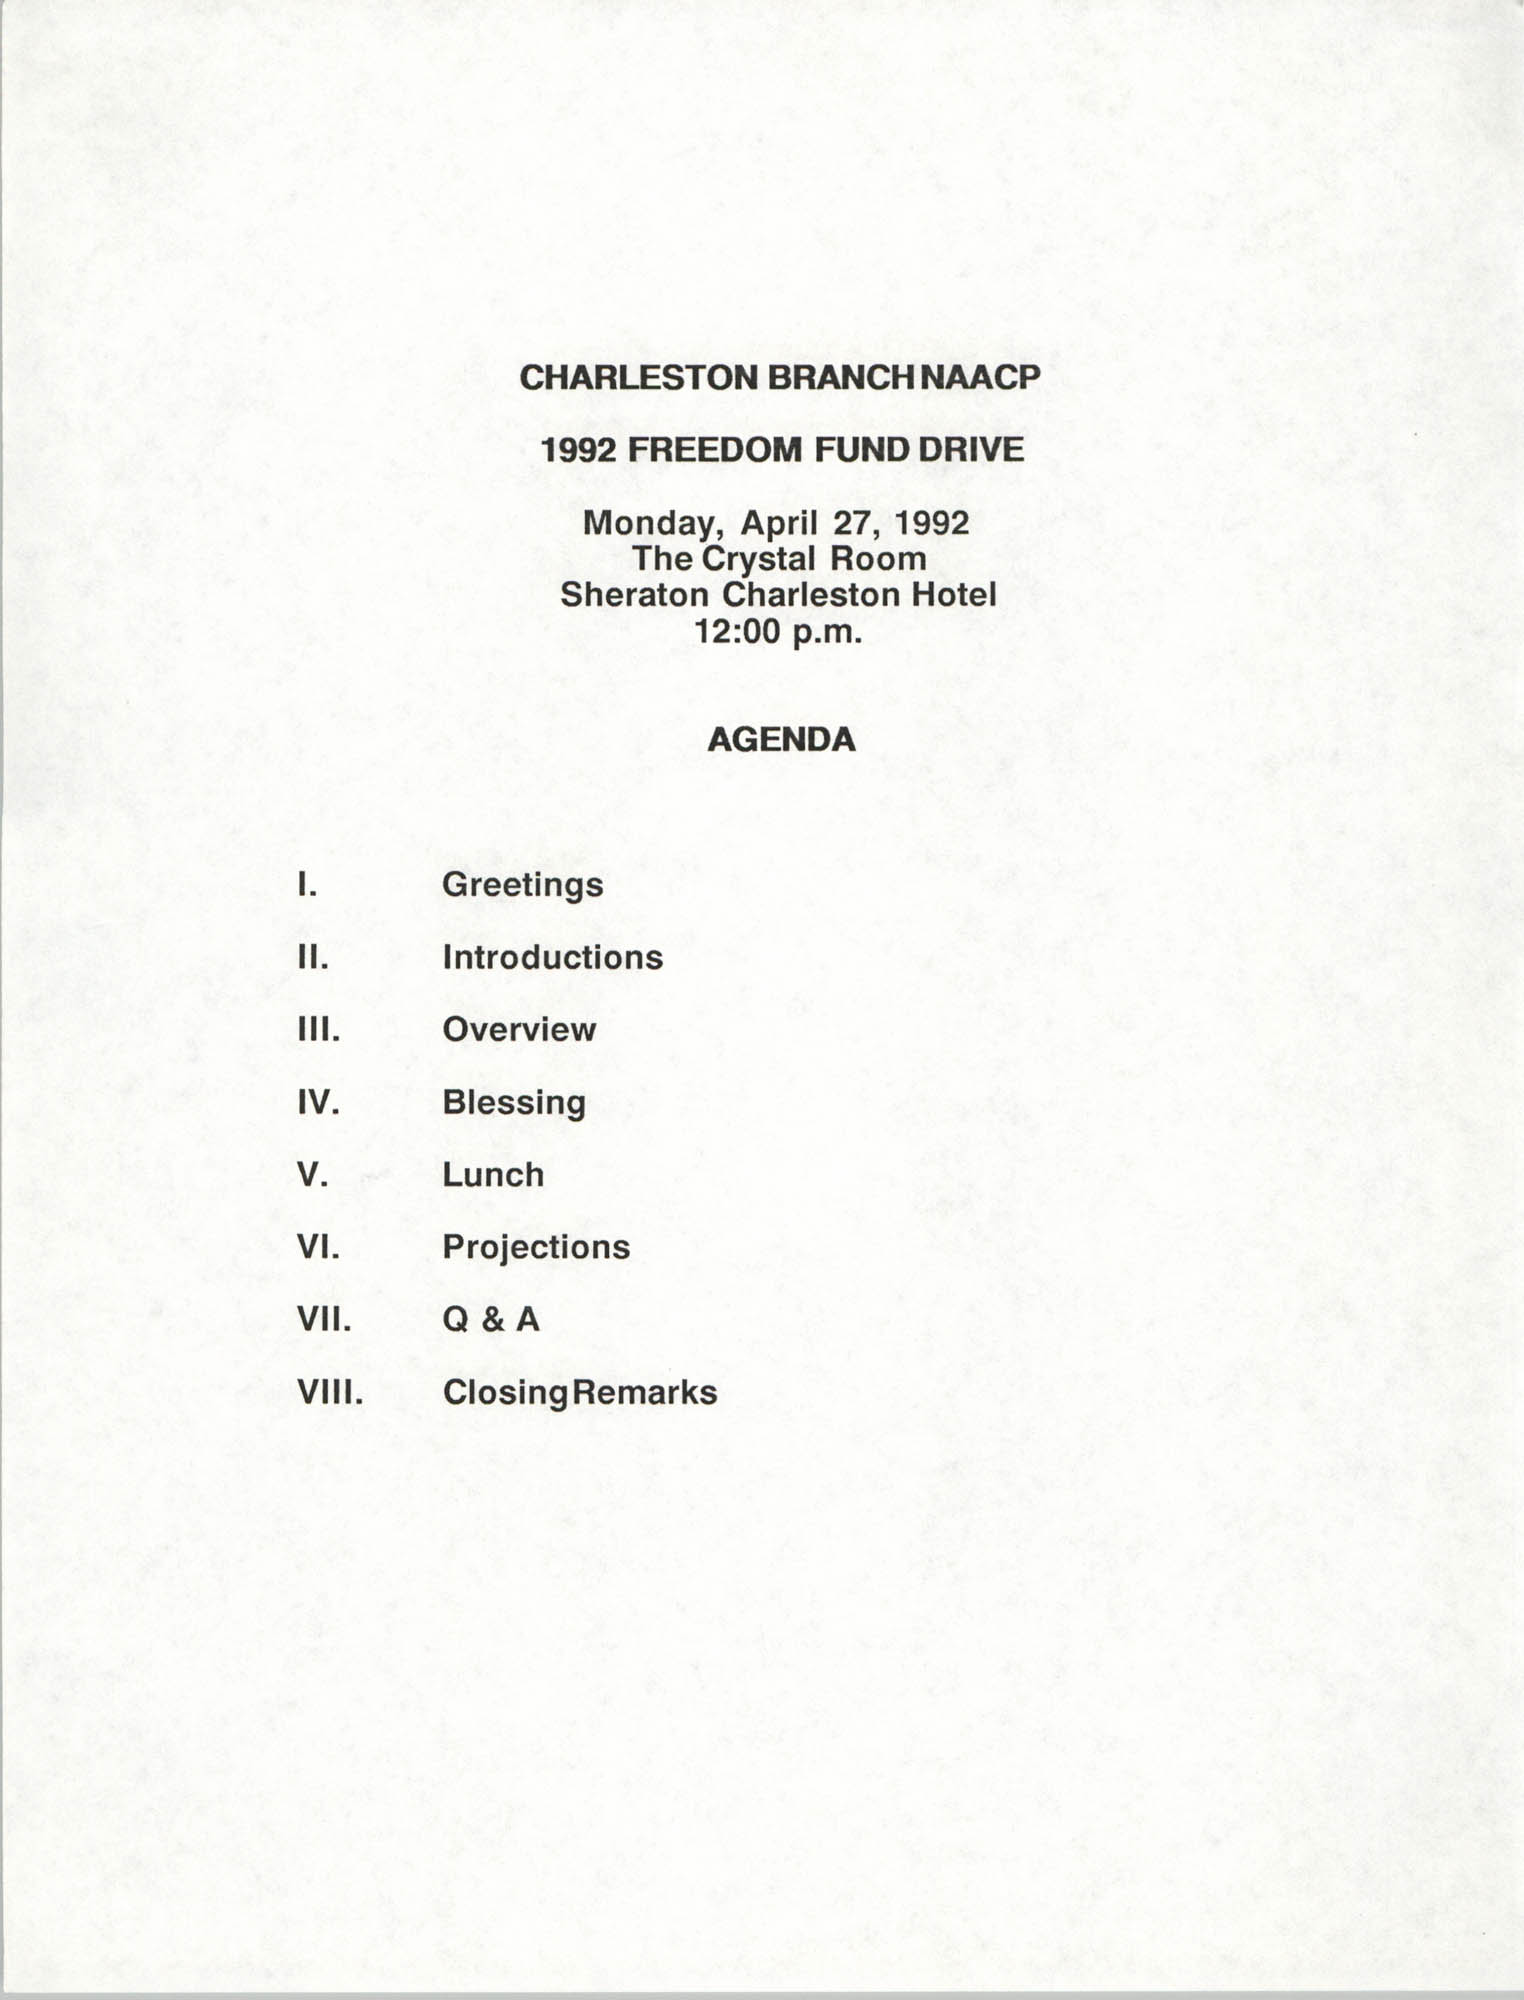 Agenda, Freedom Fund Drive, National Association for the Advancement of Colored People, April 27, 1992